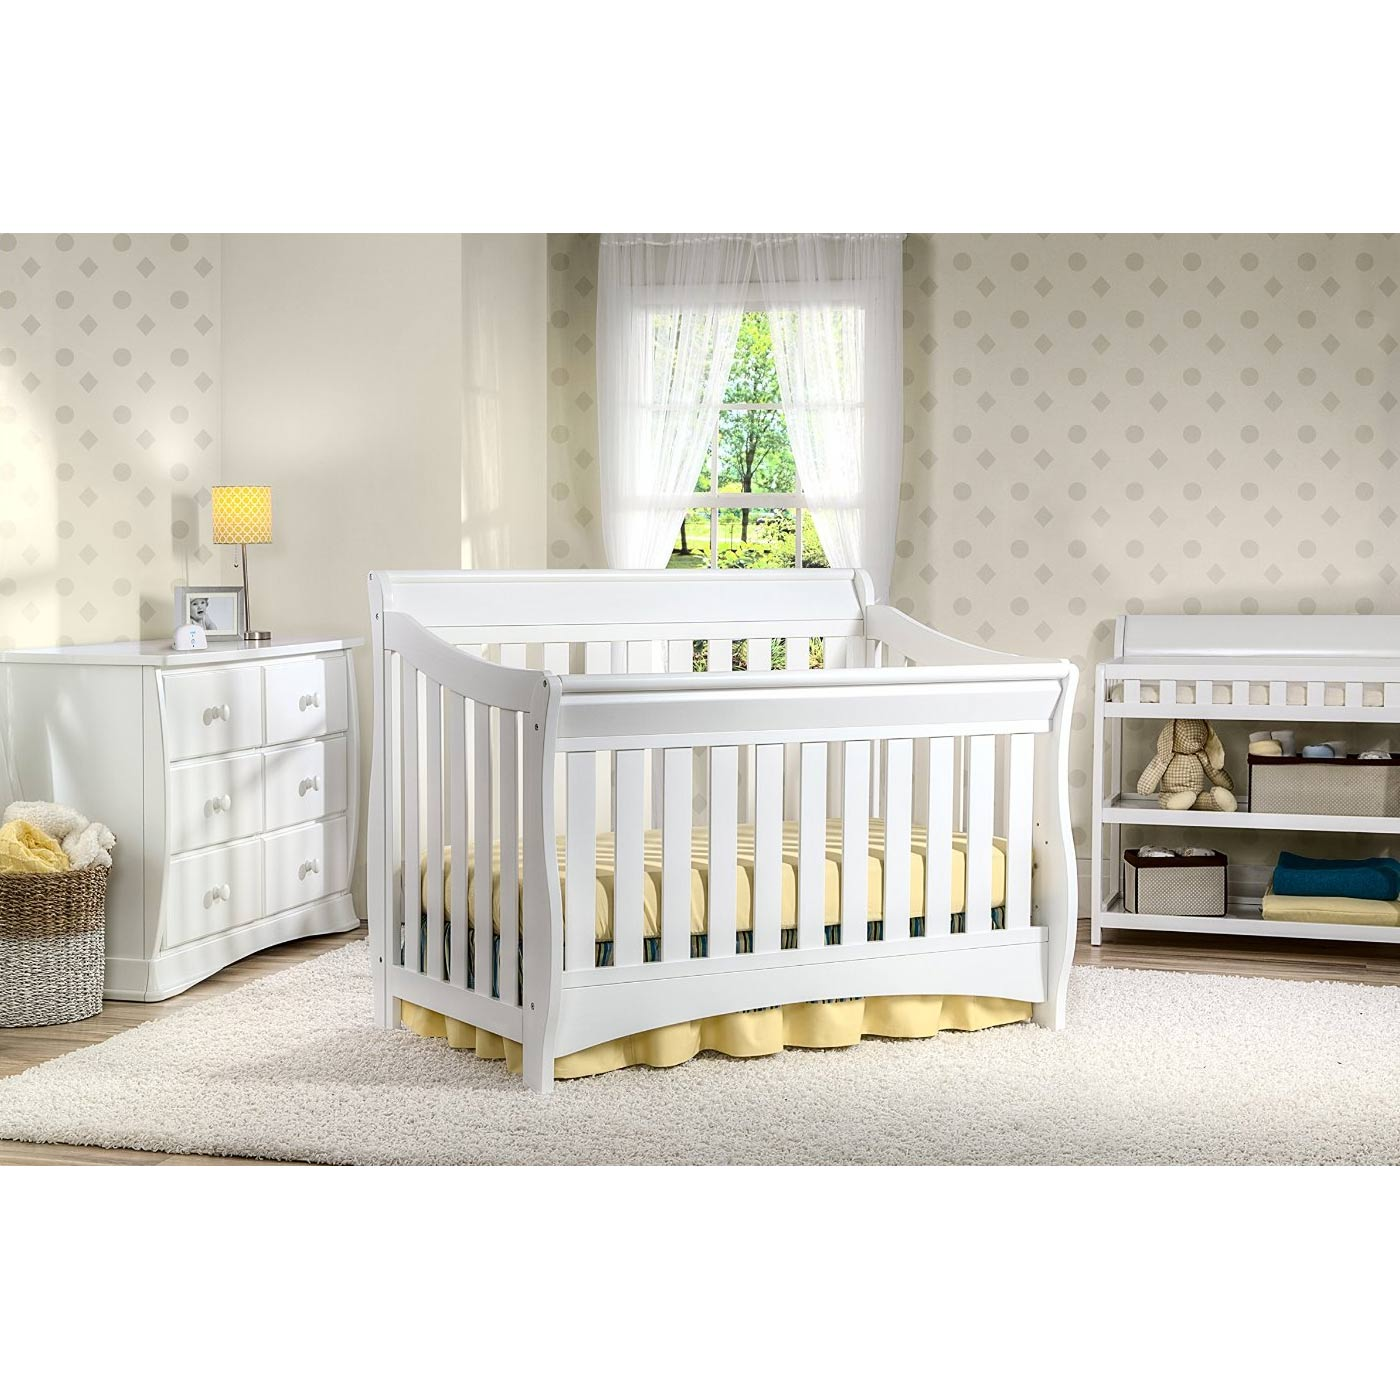 series table delta tables bentley crib in for choose your finish chocolate drawer epic changing intended children s dresser